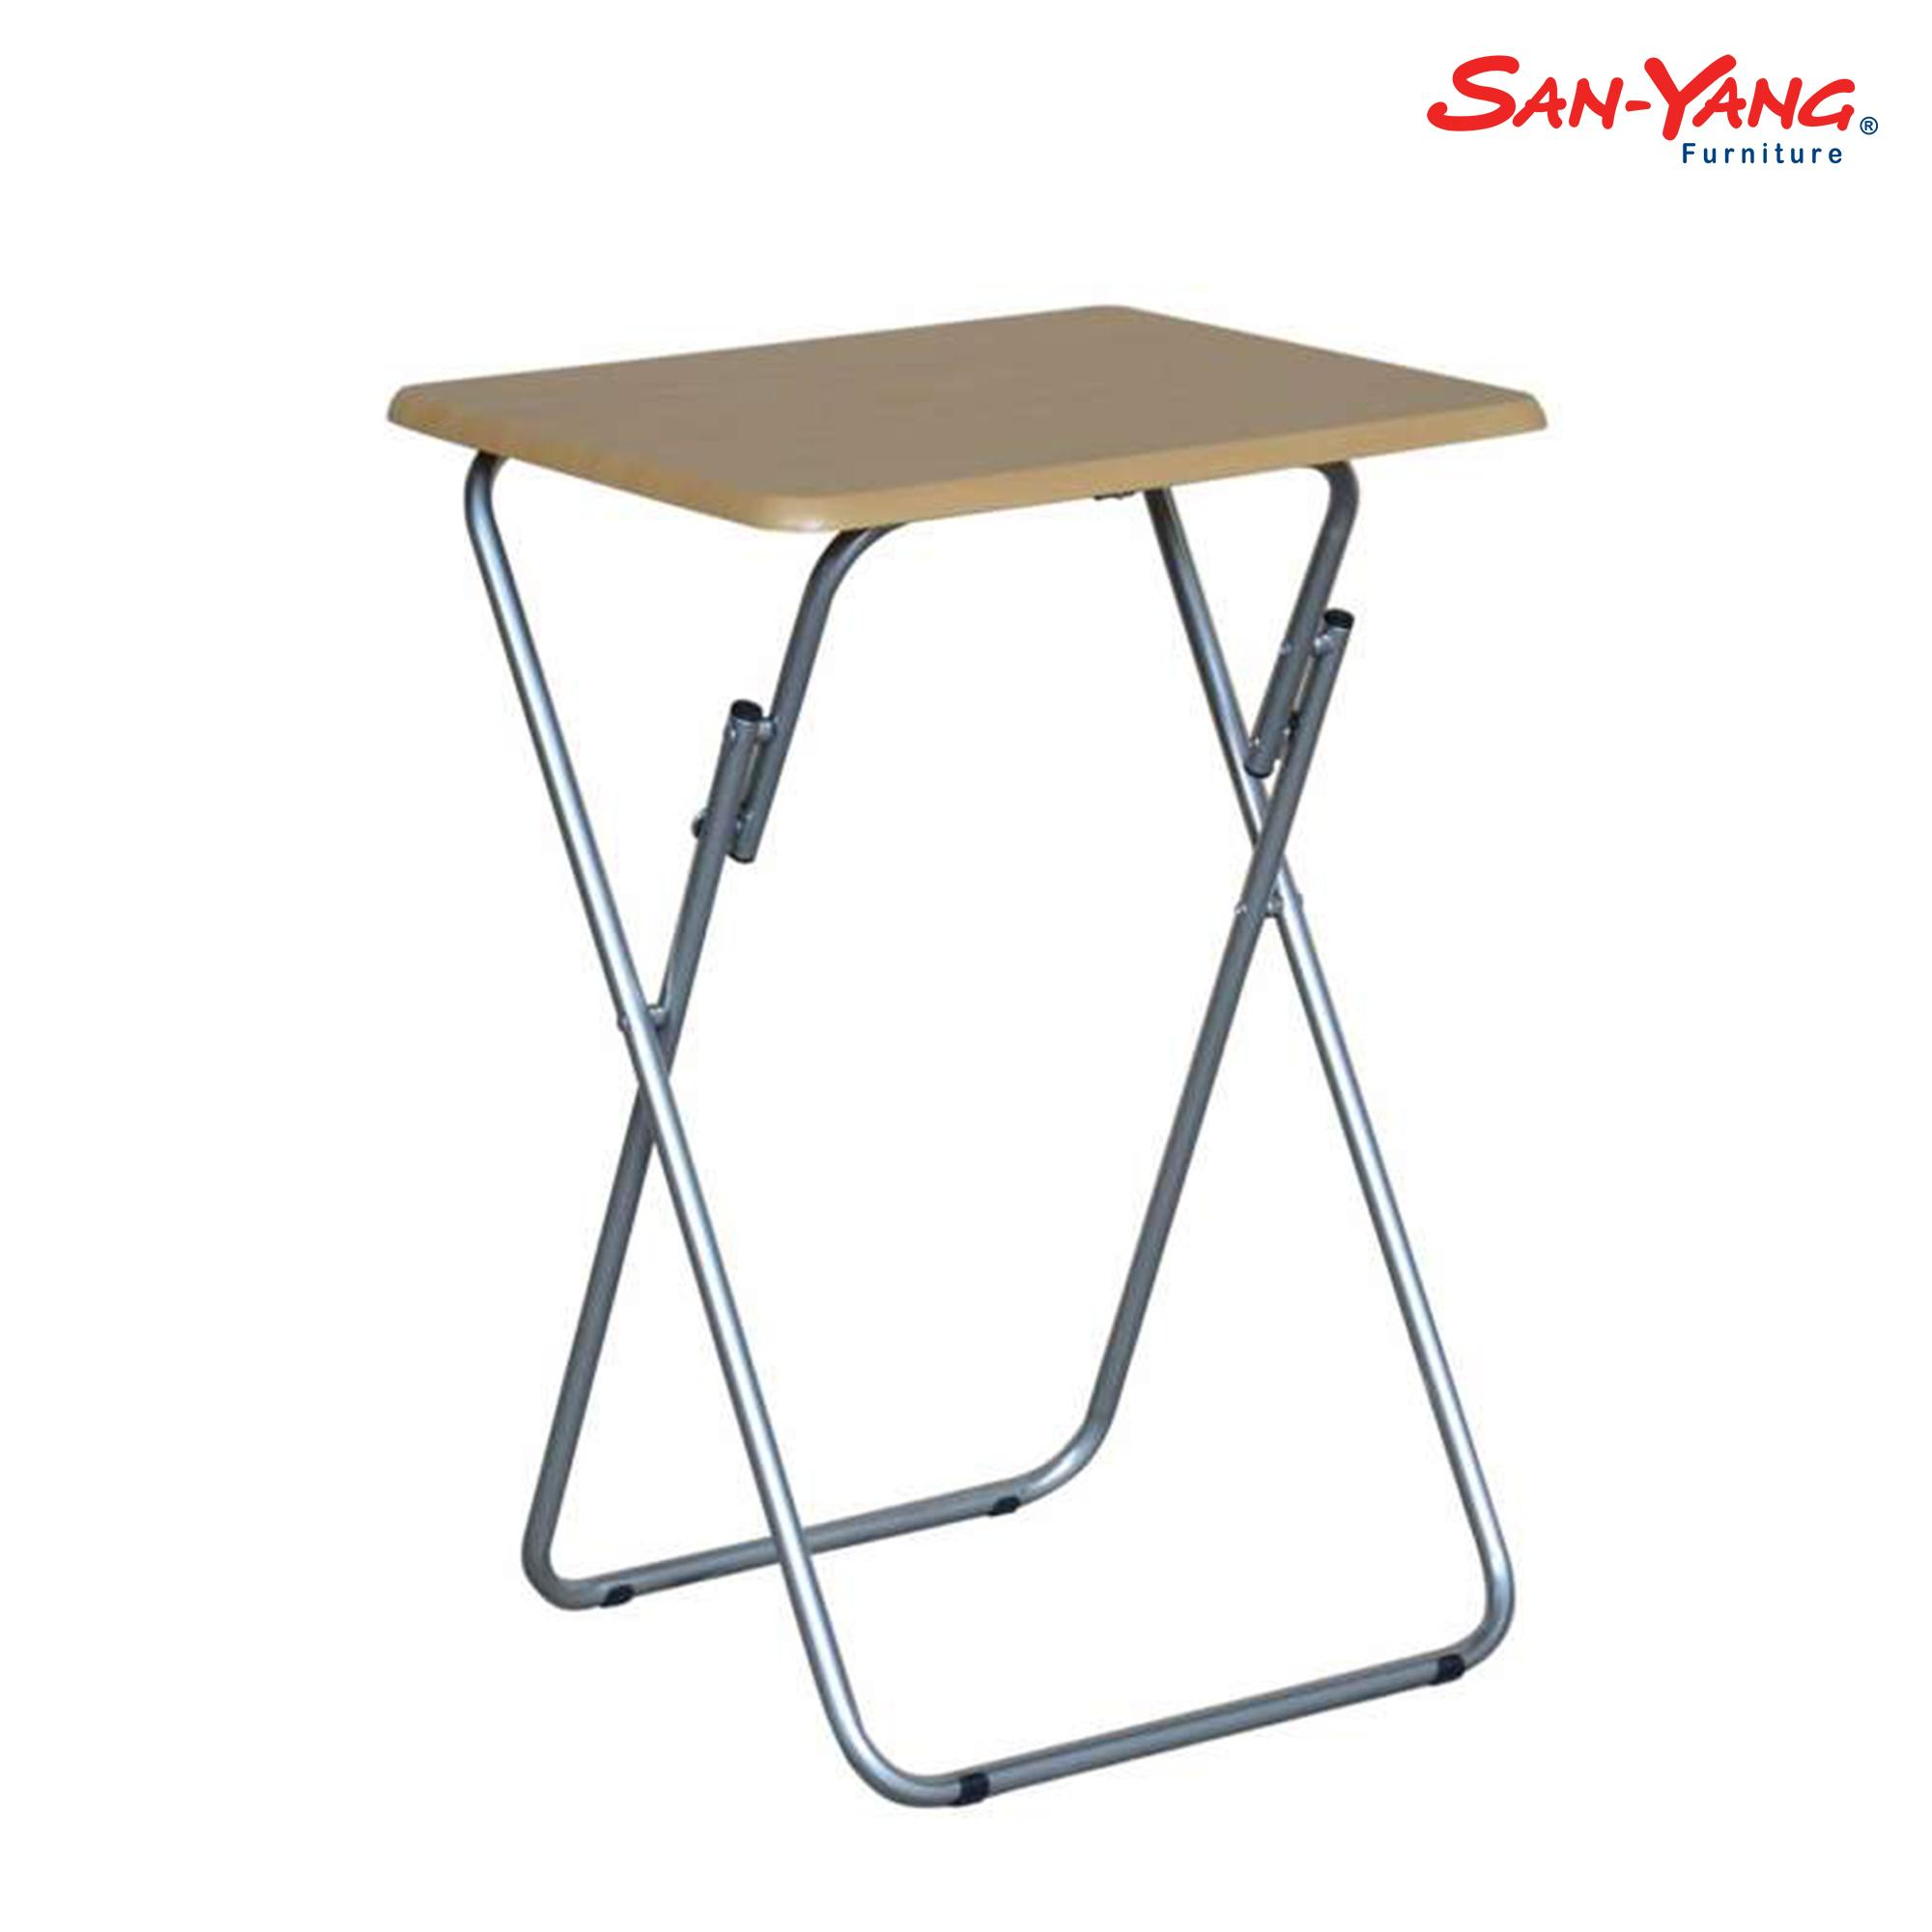 Metal Patio Furniture For Sale Intended Sanyang Folding Table Fft313 Outdoor Furniture For Sale Patio Prices Brands Review